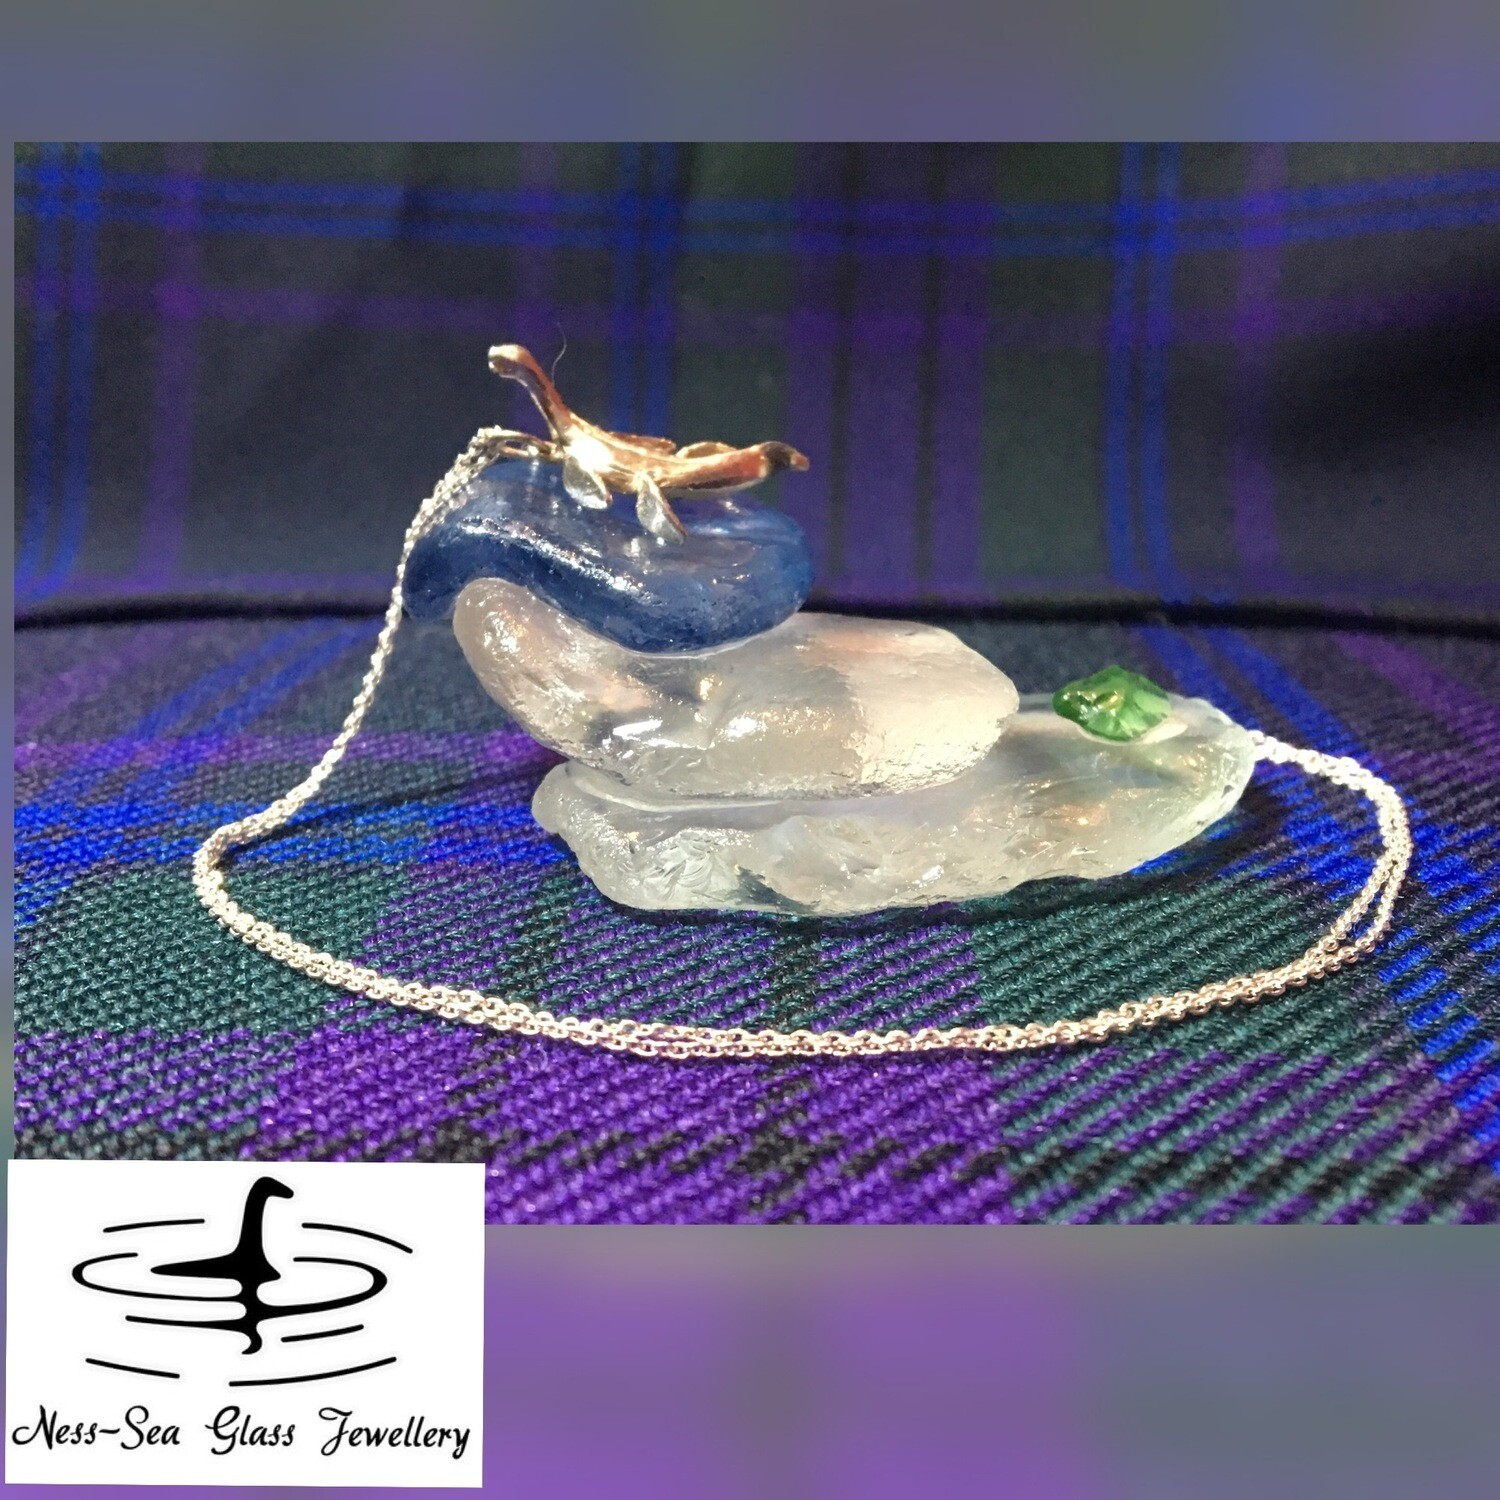 Loch Ness Sea Glass Ornamental Stand with Sterling Silver Nessie Necklace